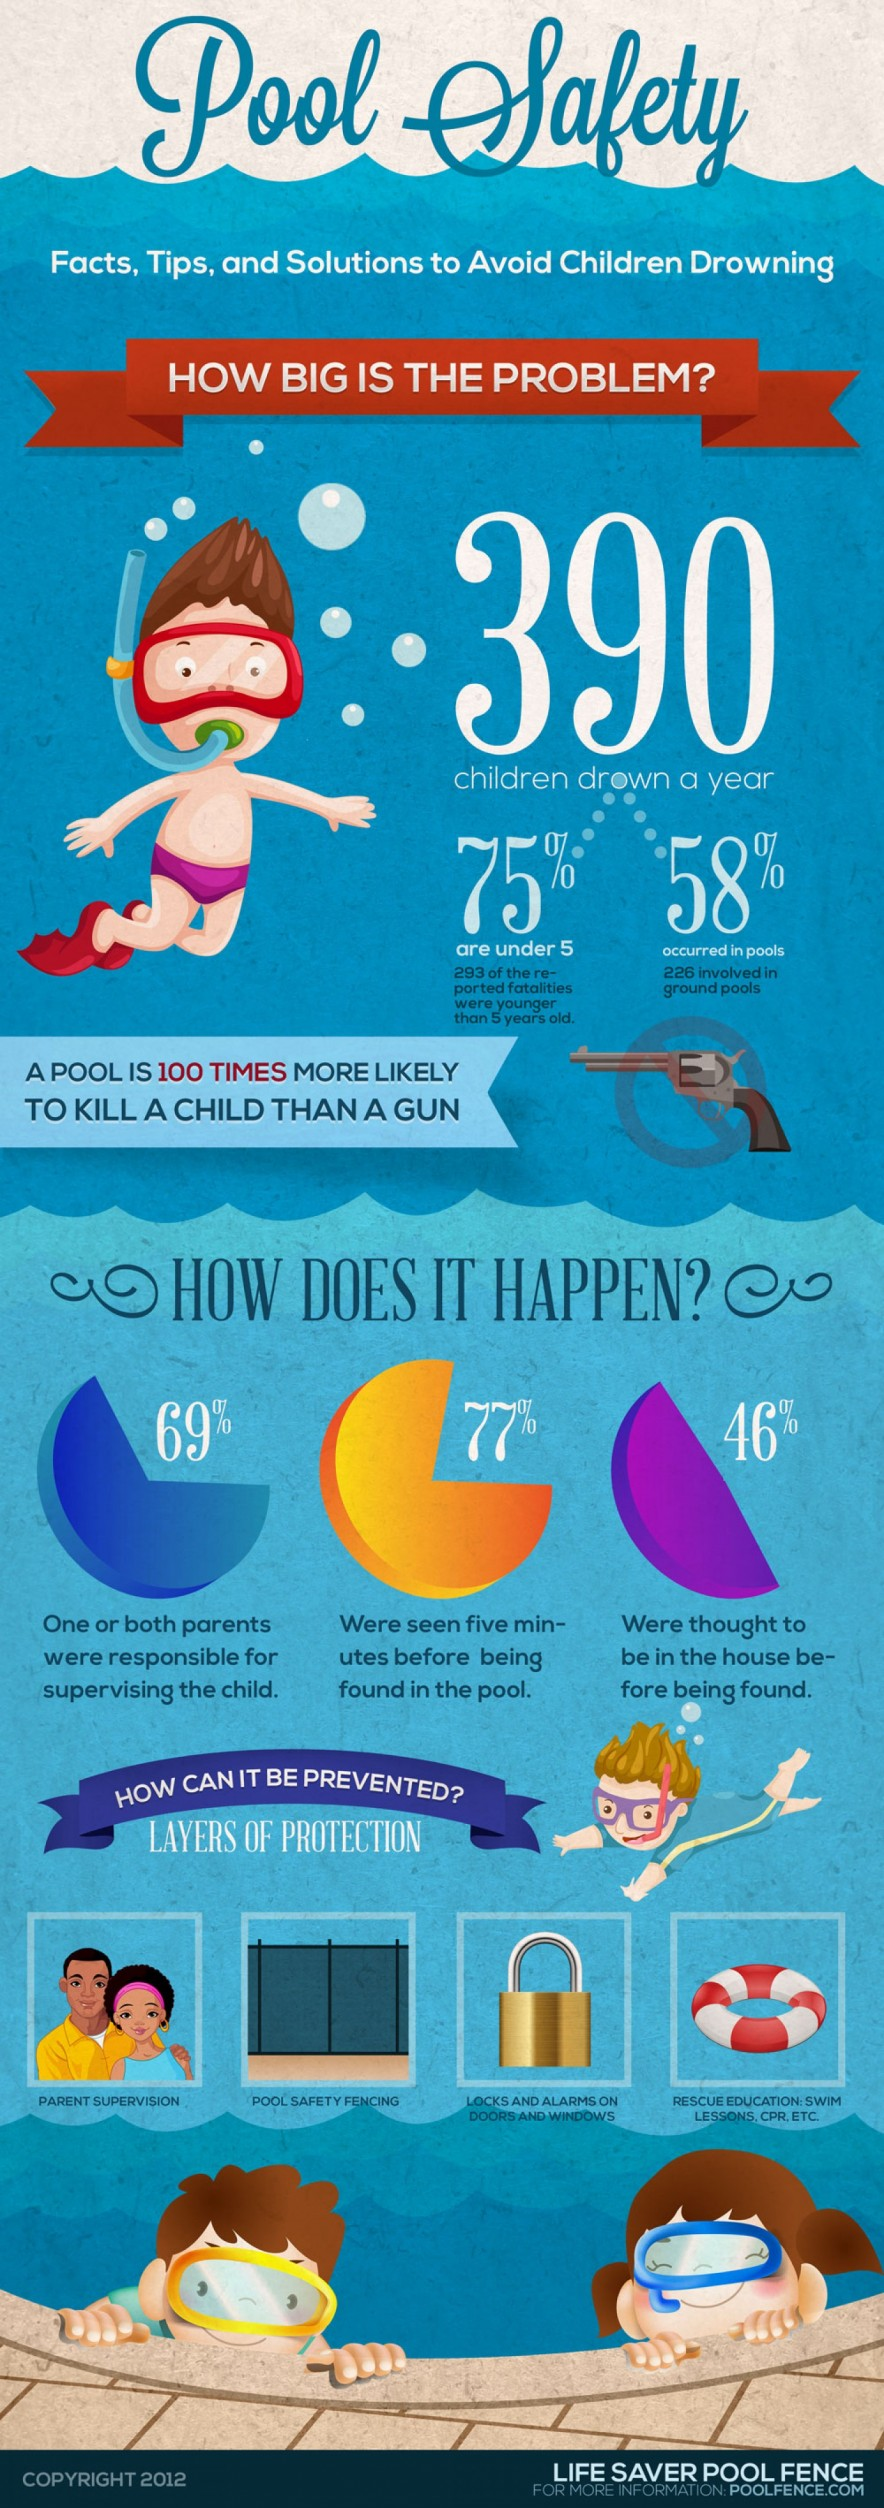 pool-safety--childhood-drowning_521279315f186_w1500